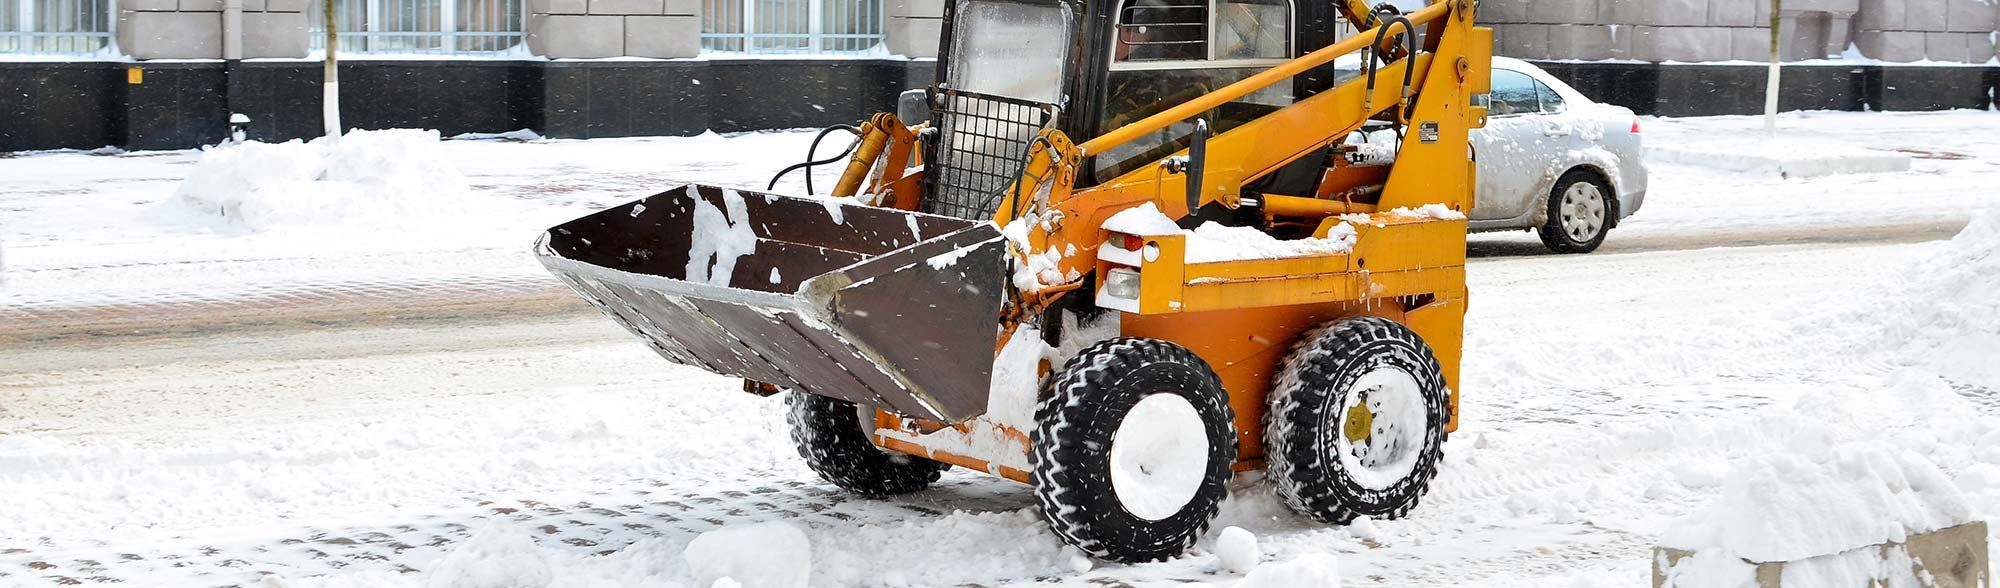 Bobcat removing snow from parking lot